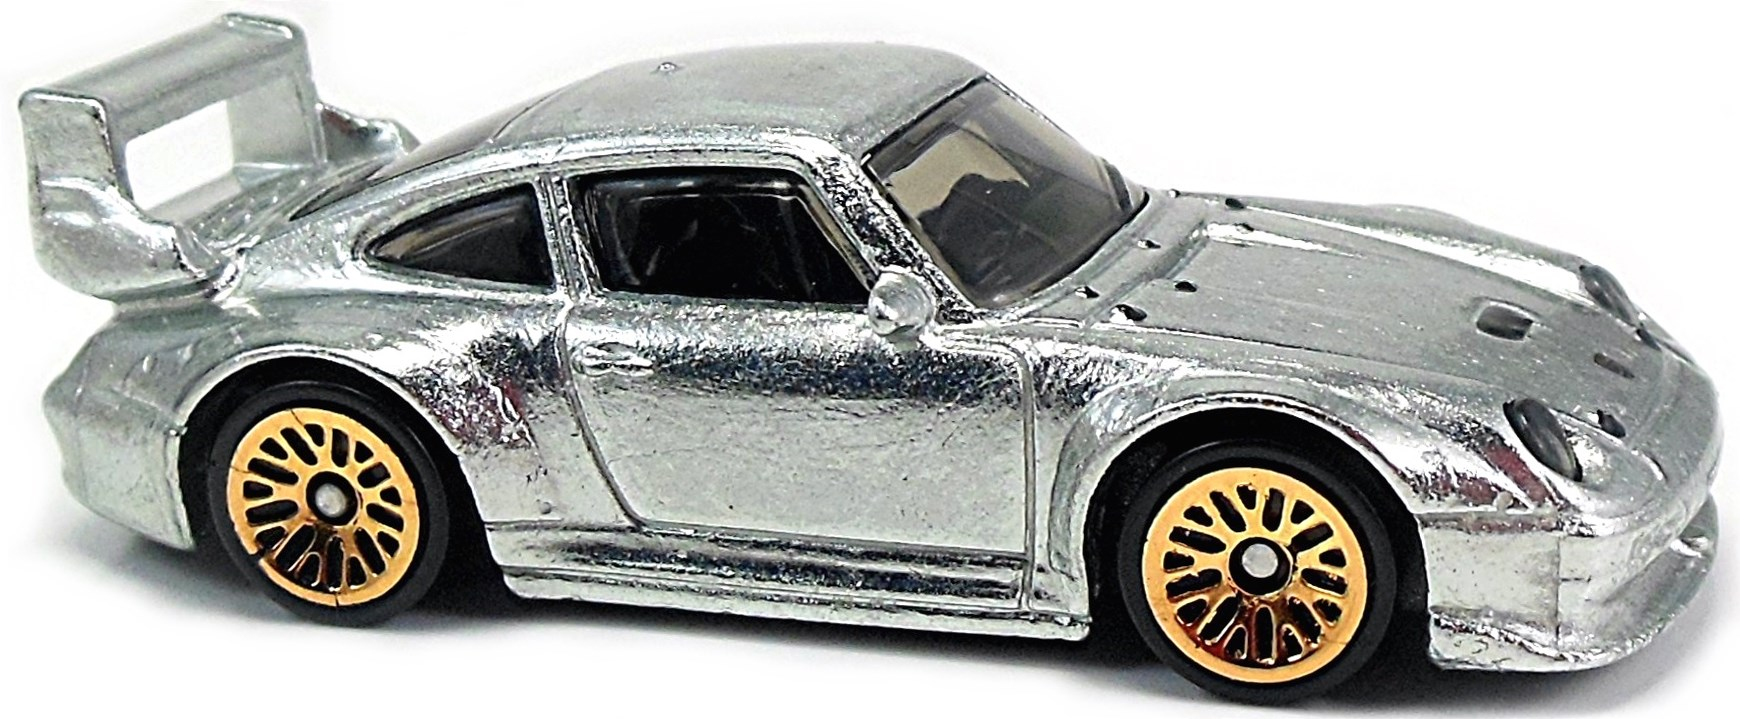 2017 Store Exclusives Hot Wheels Newsletter